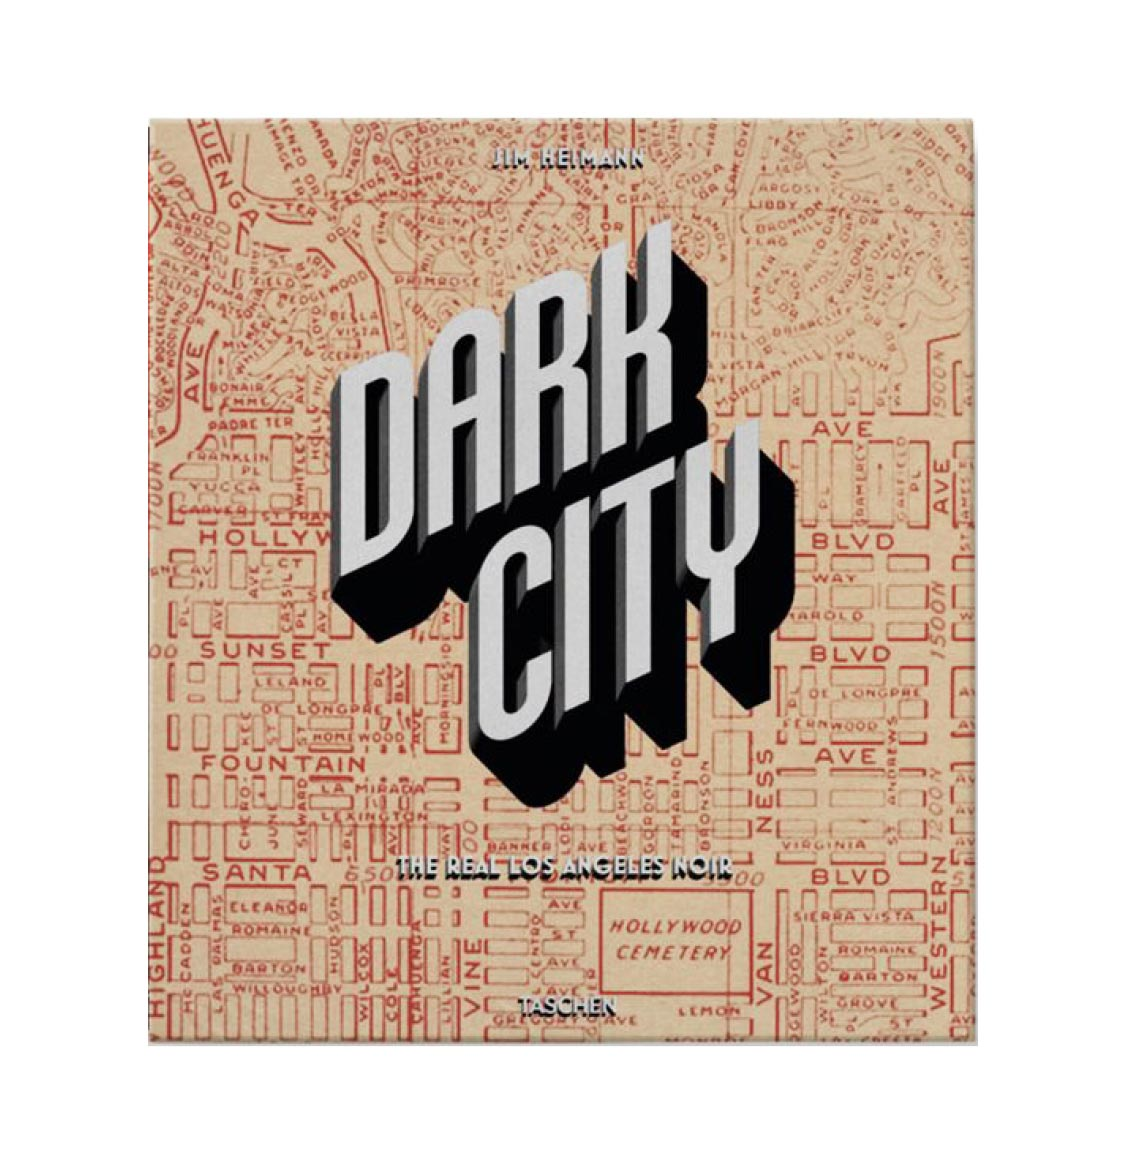 Taschen Dark City: The Real Los Angeles Noir